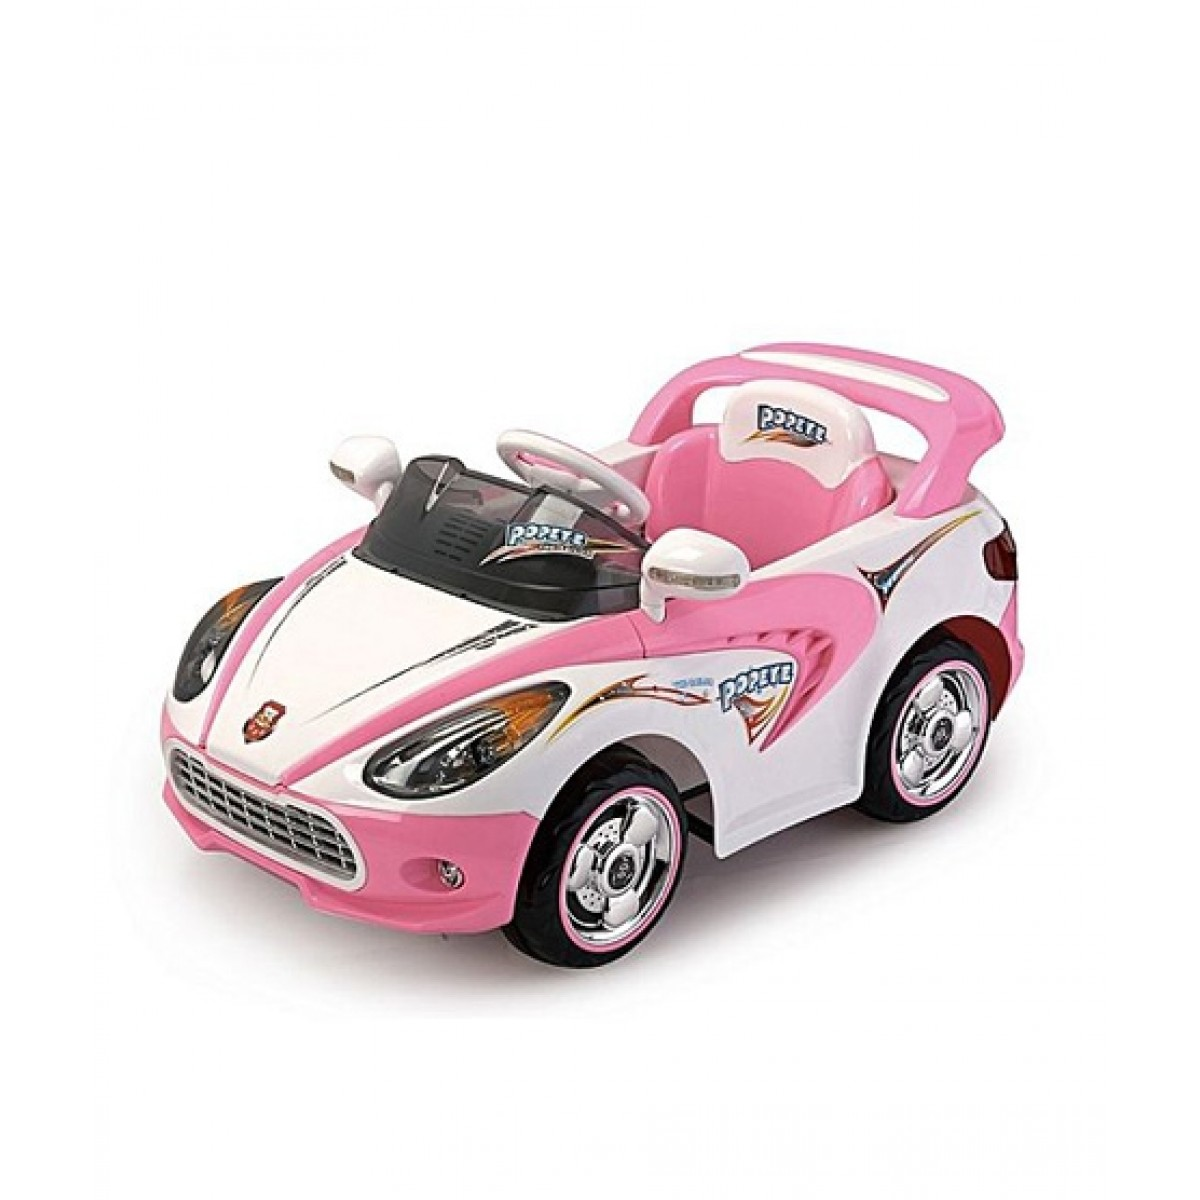 Ride On Car For Kids Jy 20c8 Price In Pakistan Buy Ride On Car